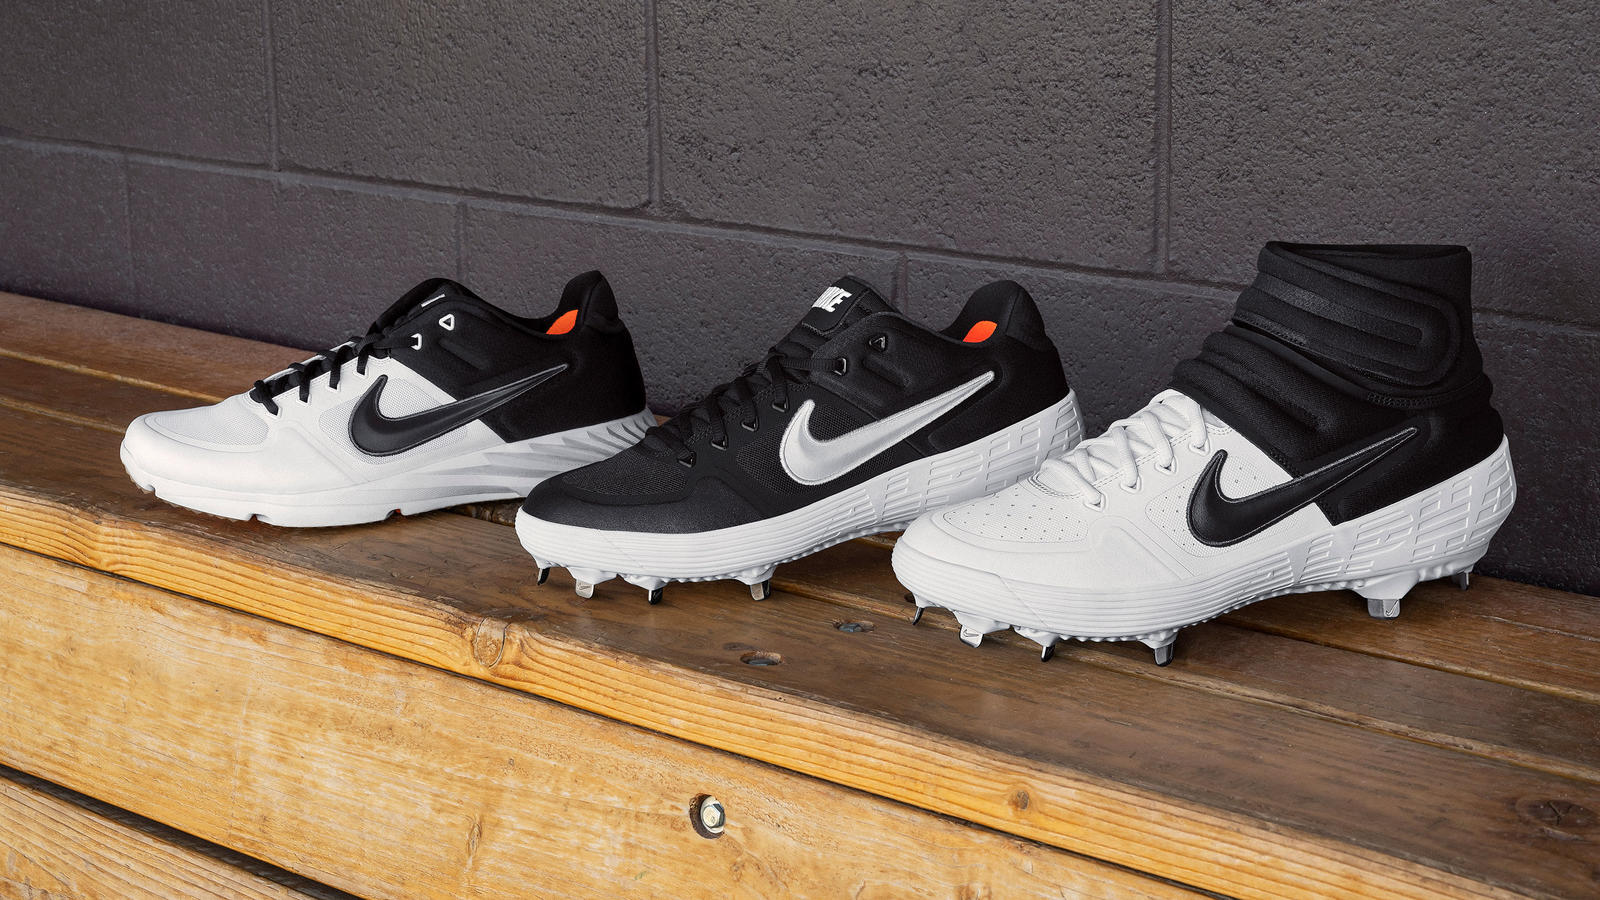 957147f7adce Nike Alpha Huarache Elite 2 Cleat and Turf Shoe - Nike News